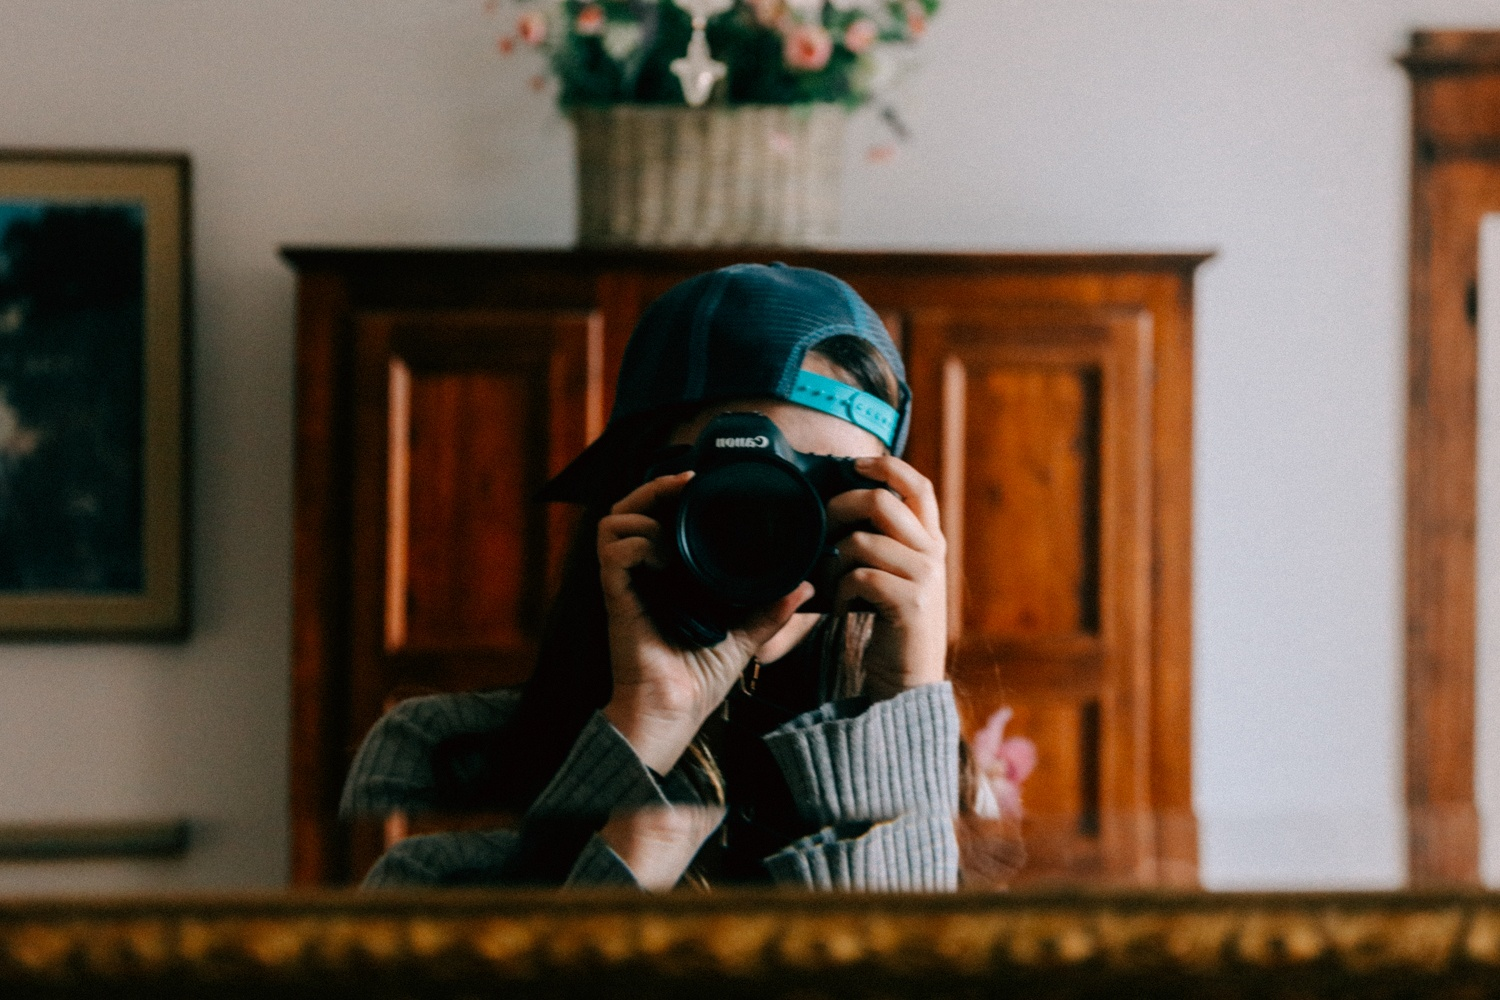 Why switching to a mirrorless camera made me love photography again